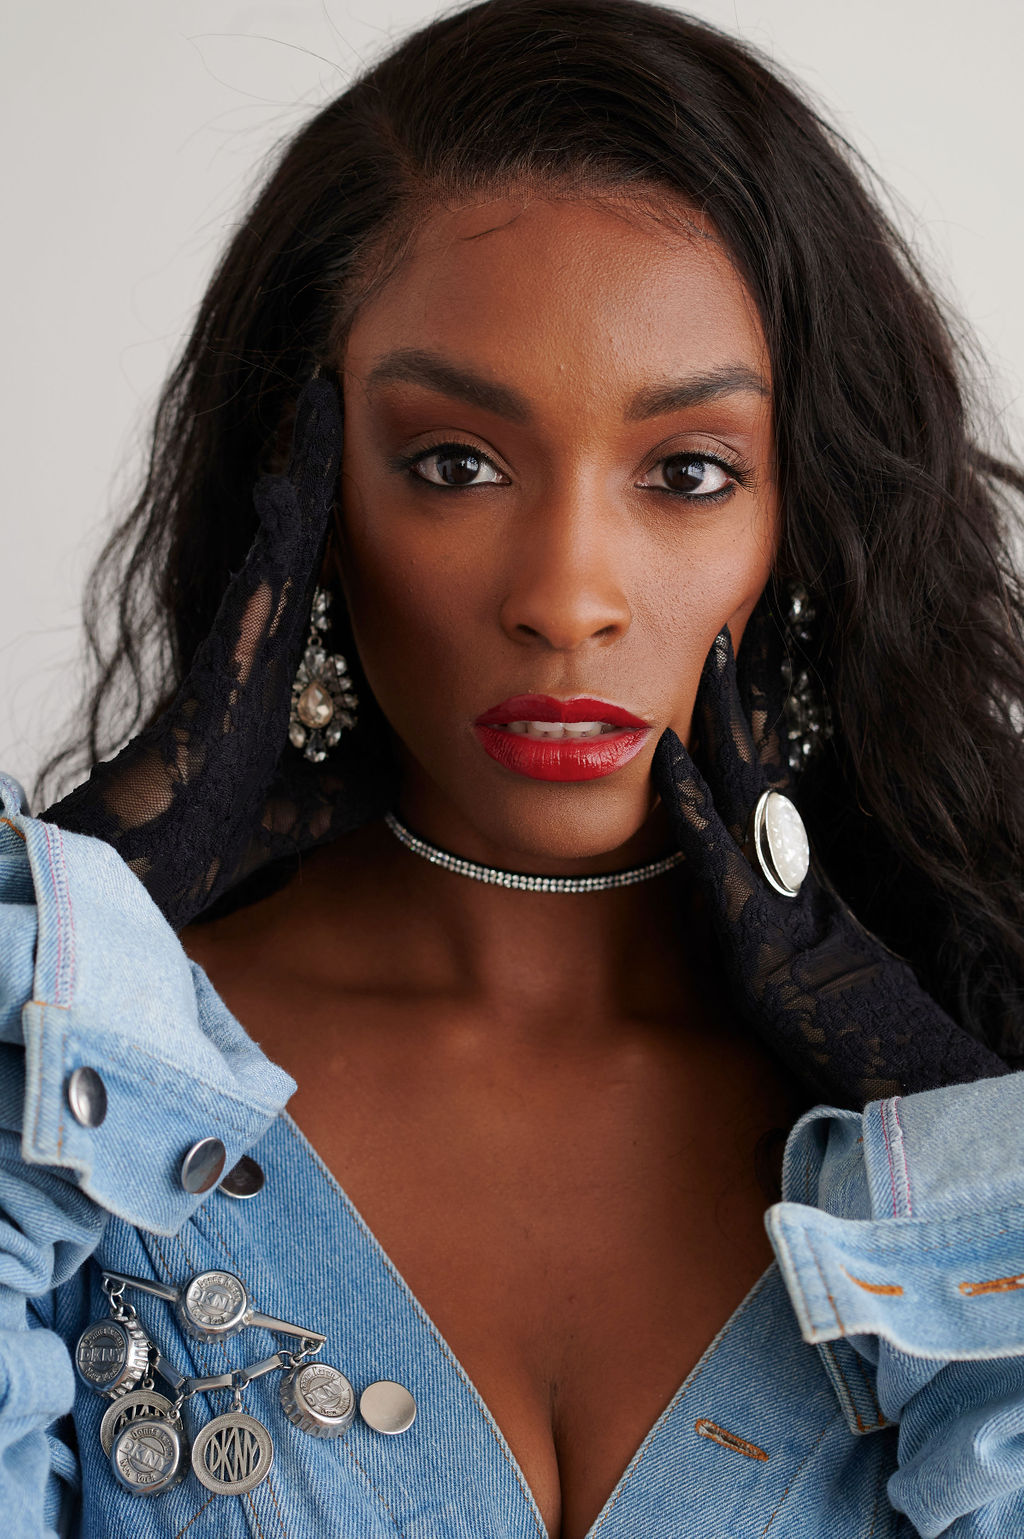 Annjulia Smalls In Y Project-styled by melissa-lcm-sheldon botler photography-denim jacket-elongated sleeves-high fashion-portrait-black model-los angeles